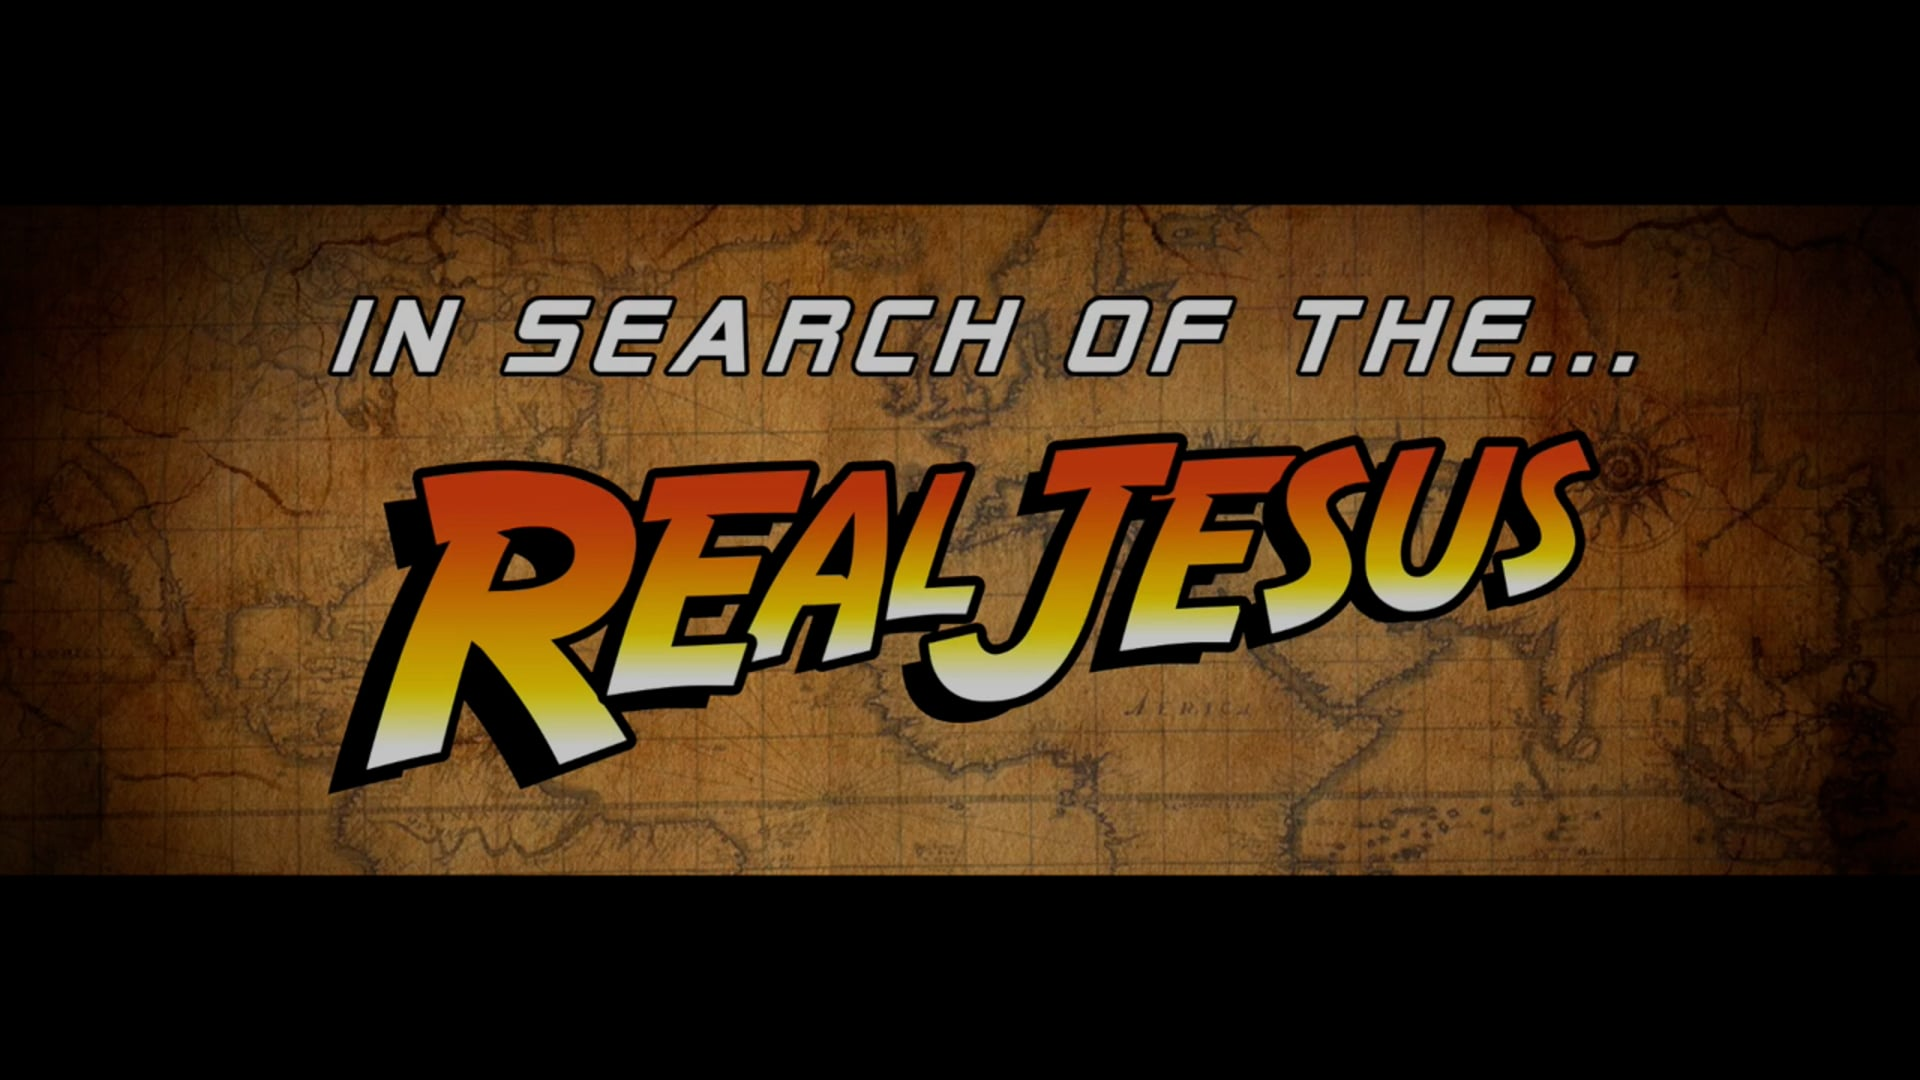 In Search of the Real Jesus - People Who Believed